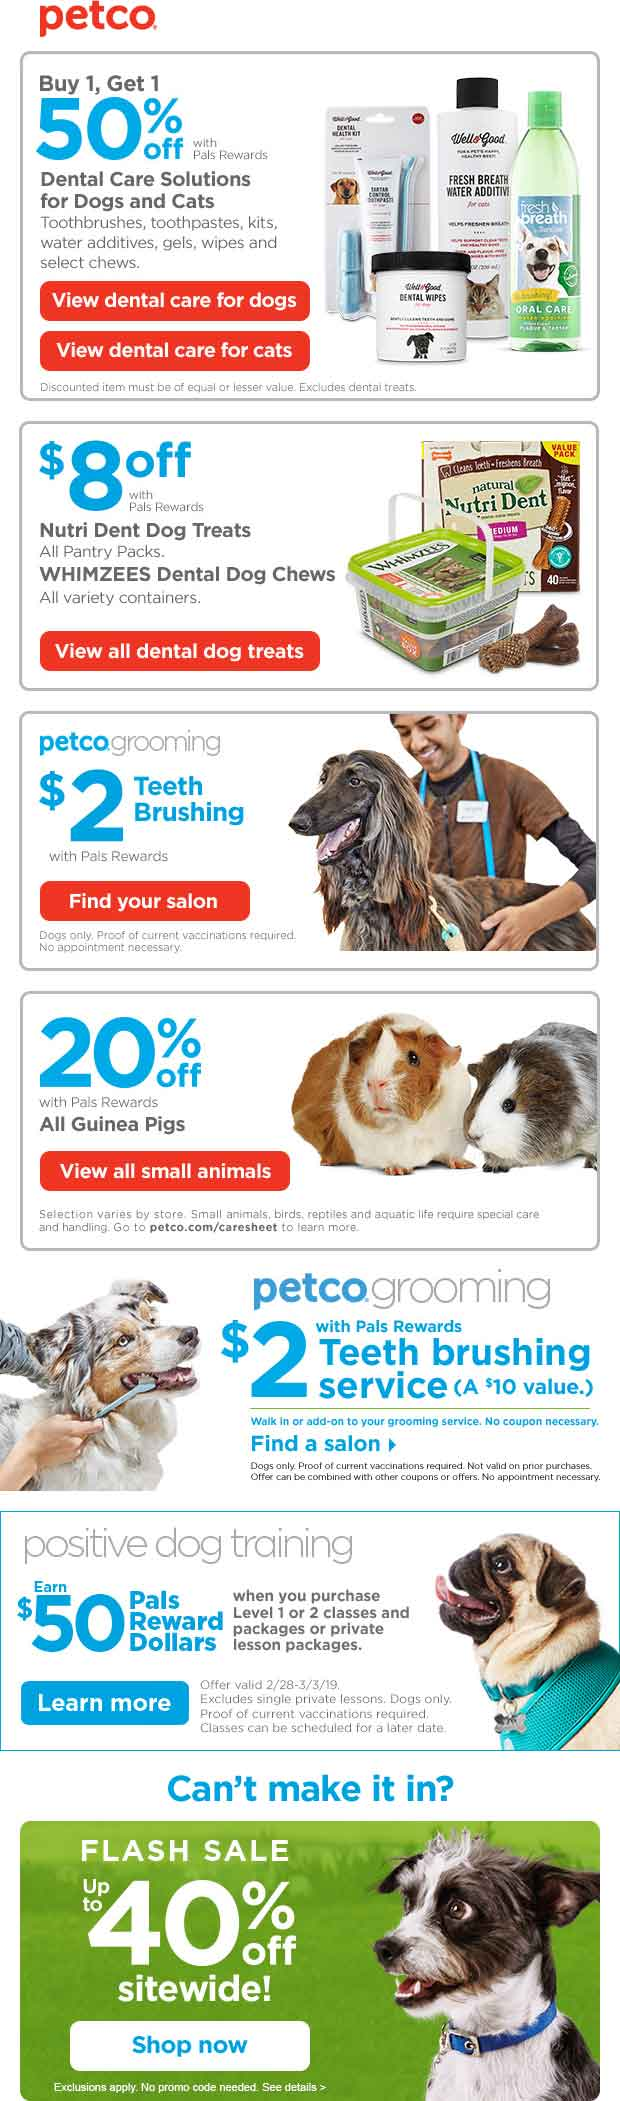 Petco Coupon May 2019 20% off guinea pigs & more at Petco